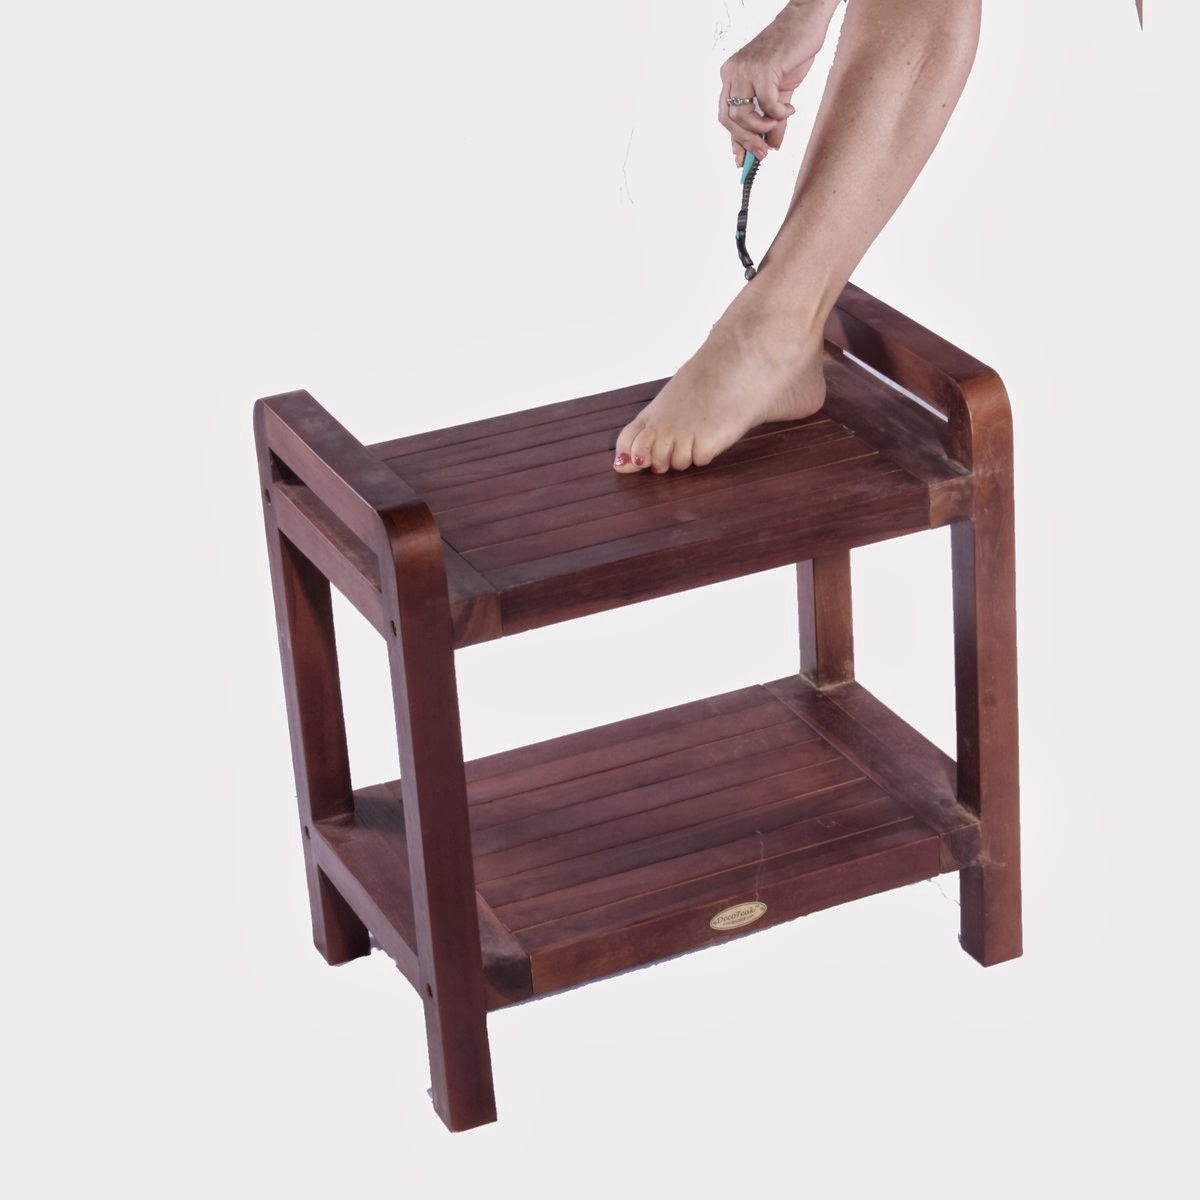 Teak Shower Chairs With Arms Wide Office Chair Great Ideas Bench Solid Bath